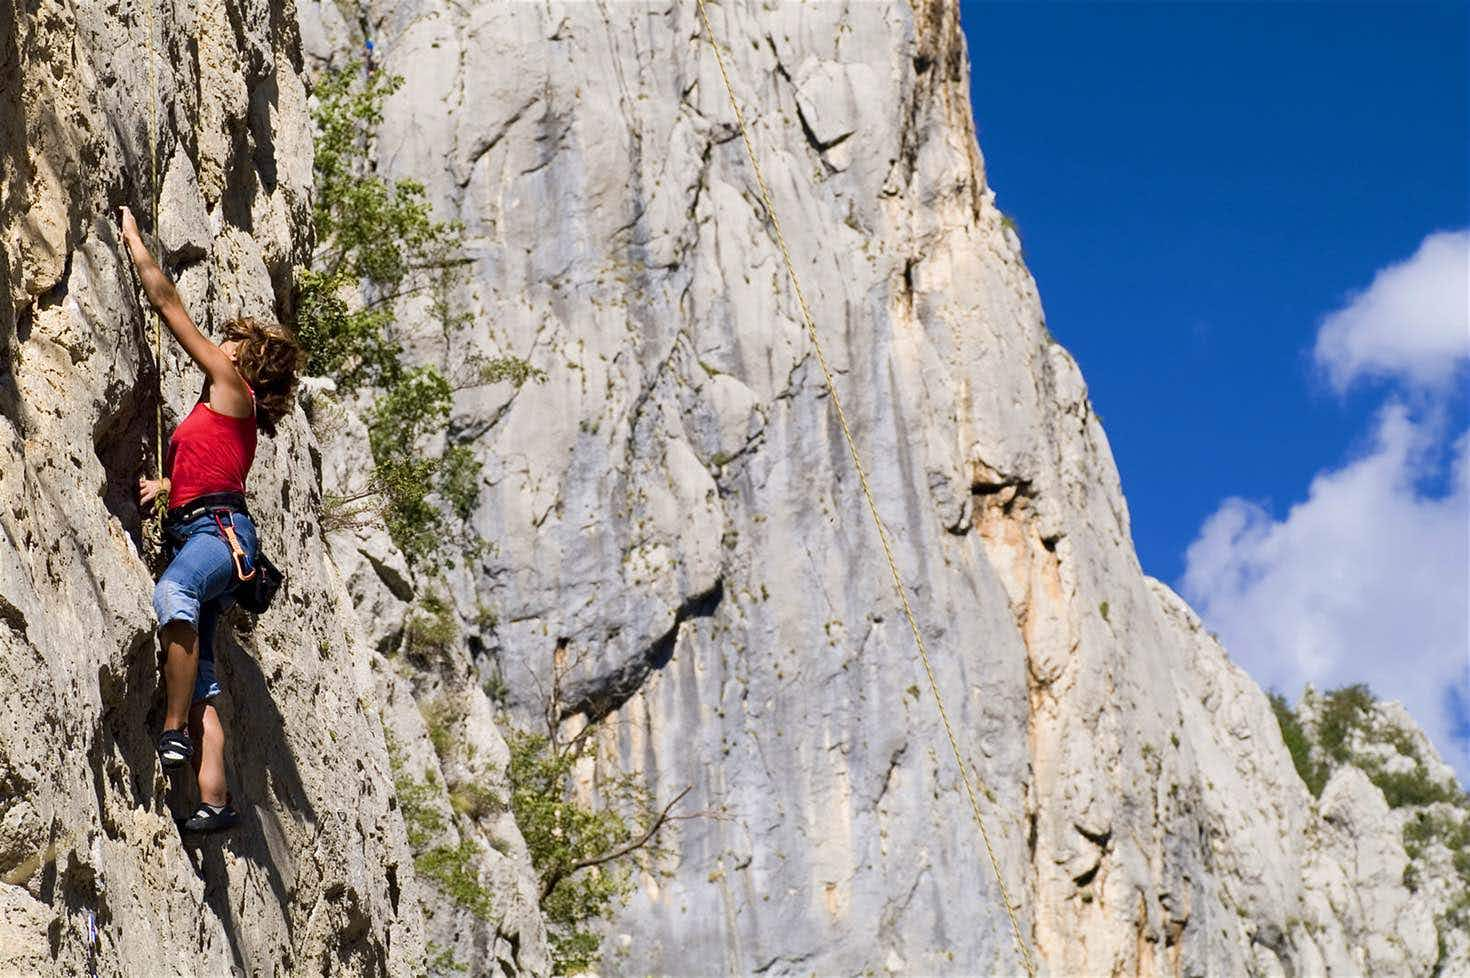 Webinar series promotes adventure travel and sustainable tourism in the Balkans